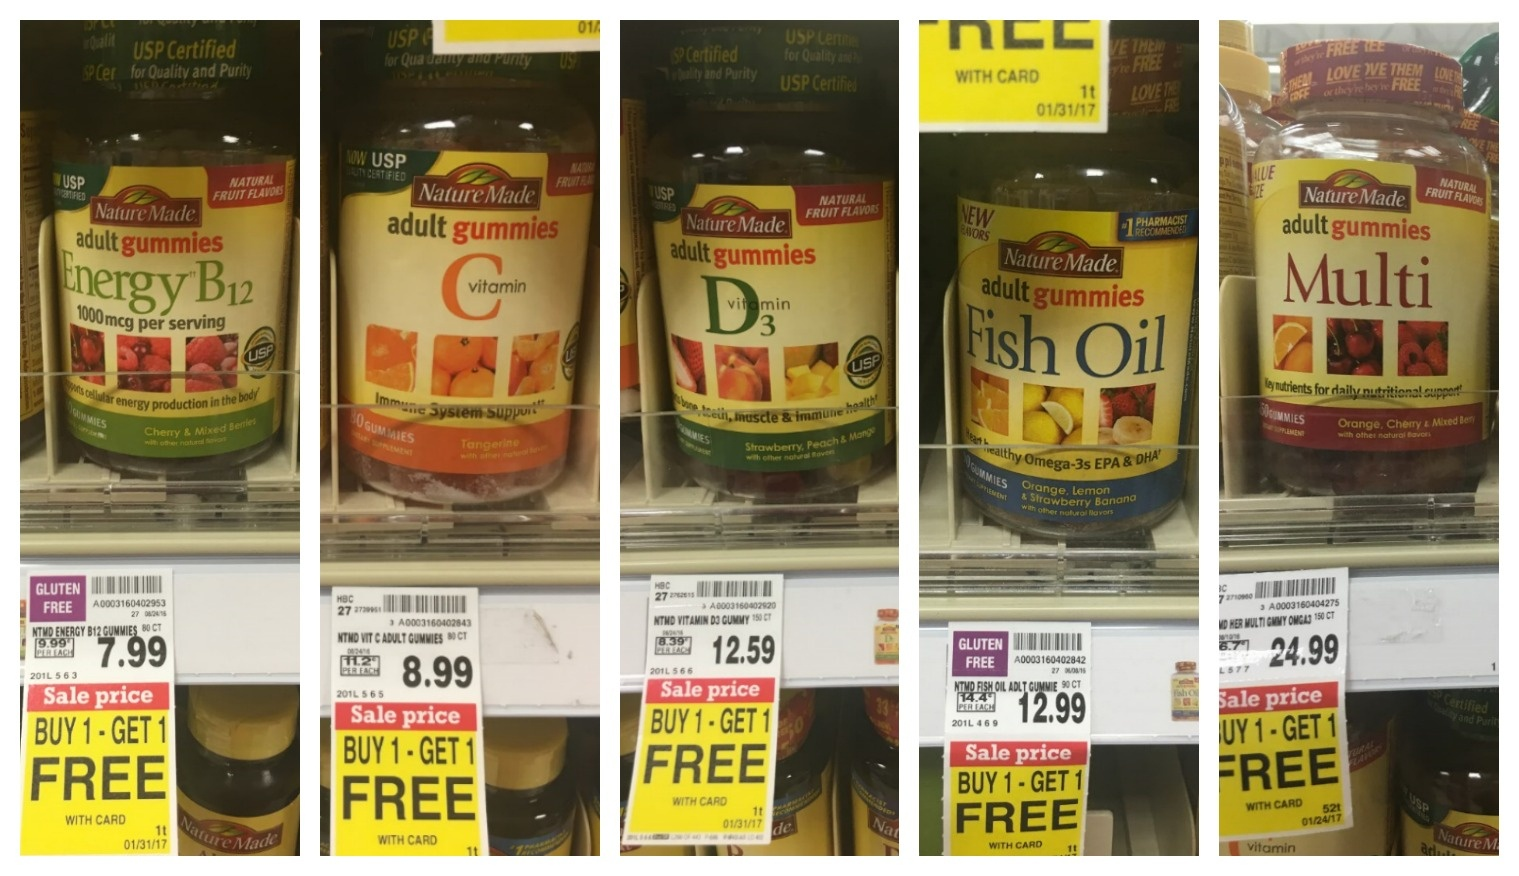 Great Deals On Nature Made Vitamins At Kroger!! | Kroger Krazy - Free Printable Nature Made Vitamin Coupons